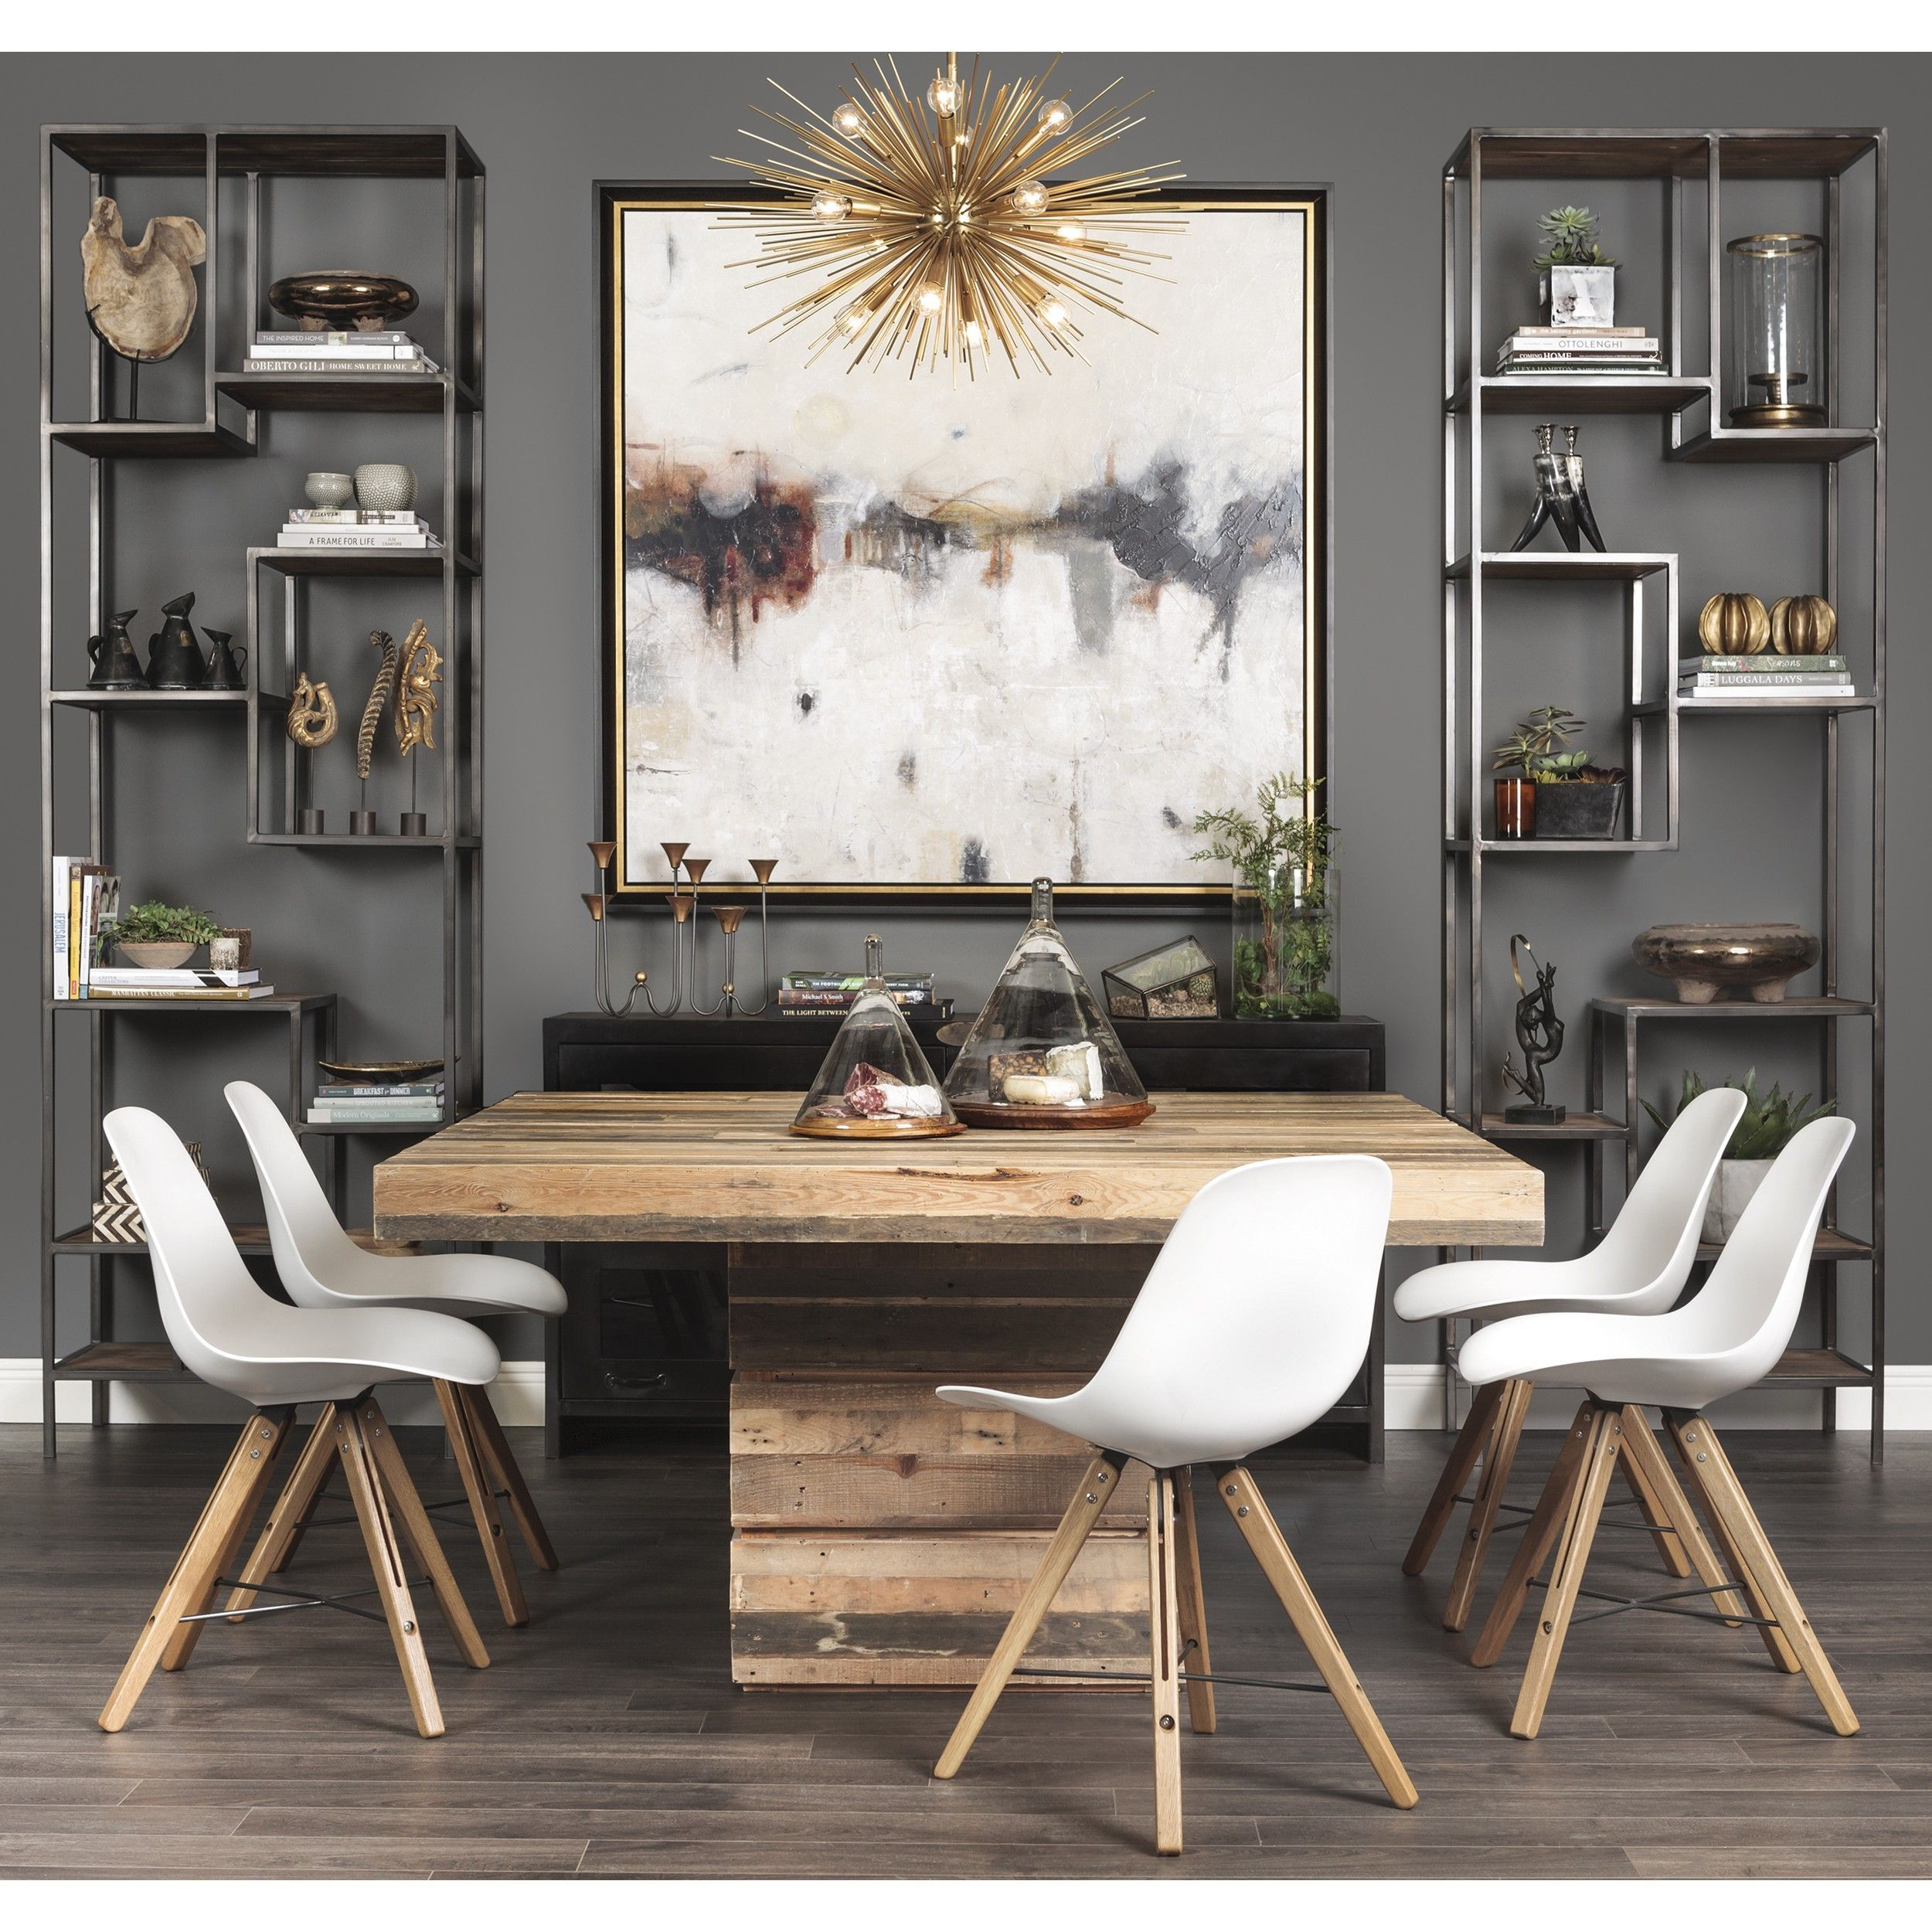 Find The Perfect Luxury Lighting Fixtures For Your Dining Room Decor Project At Lux Rustic Dining Room Dining Room Design Modern Farmhouse Dining Rooms Decor